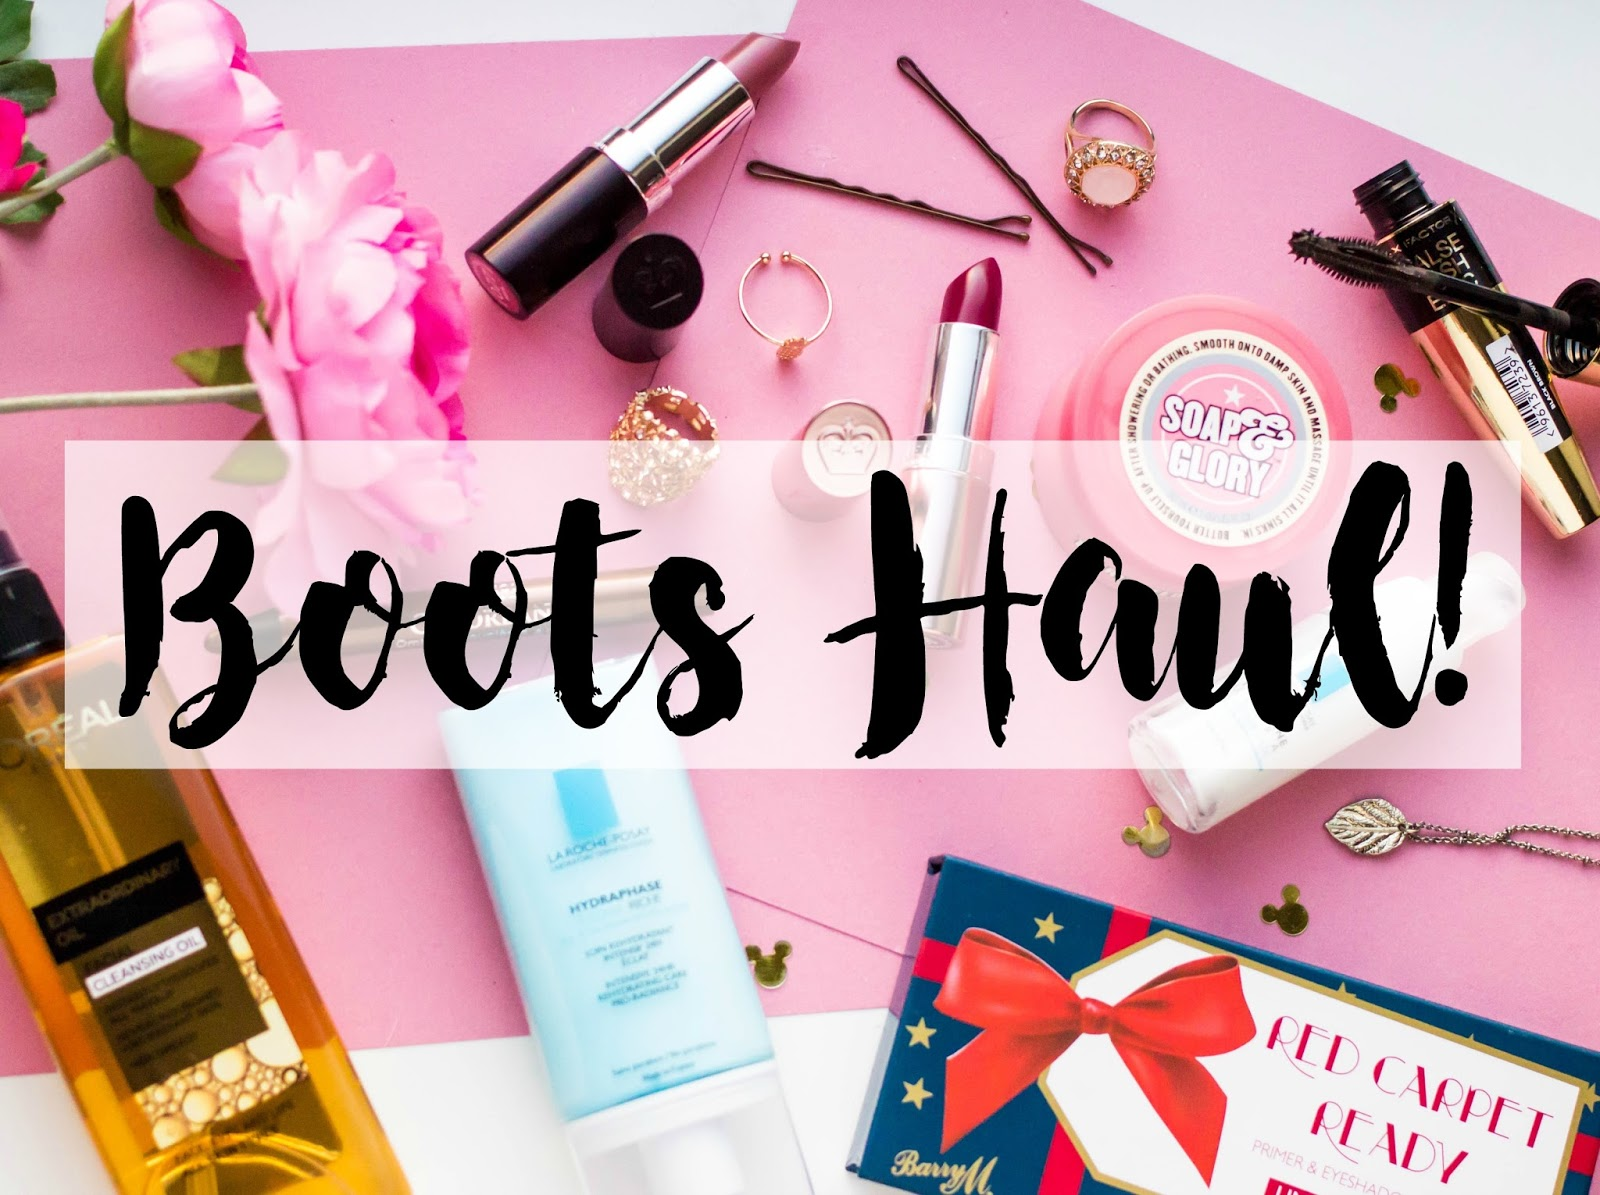 Boots Haul, beauty blogs, Katie Writes, Derbyshire-based bloggers,